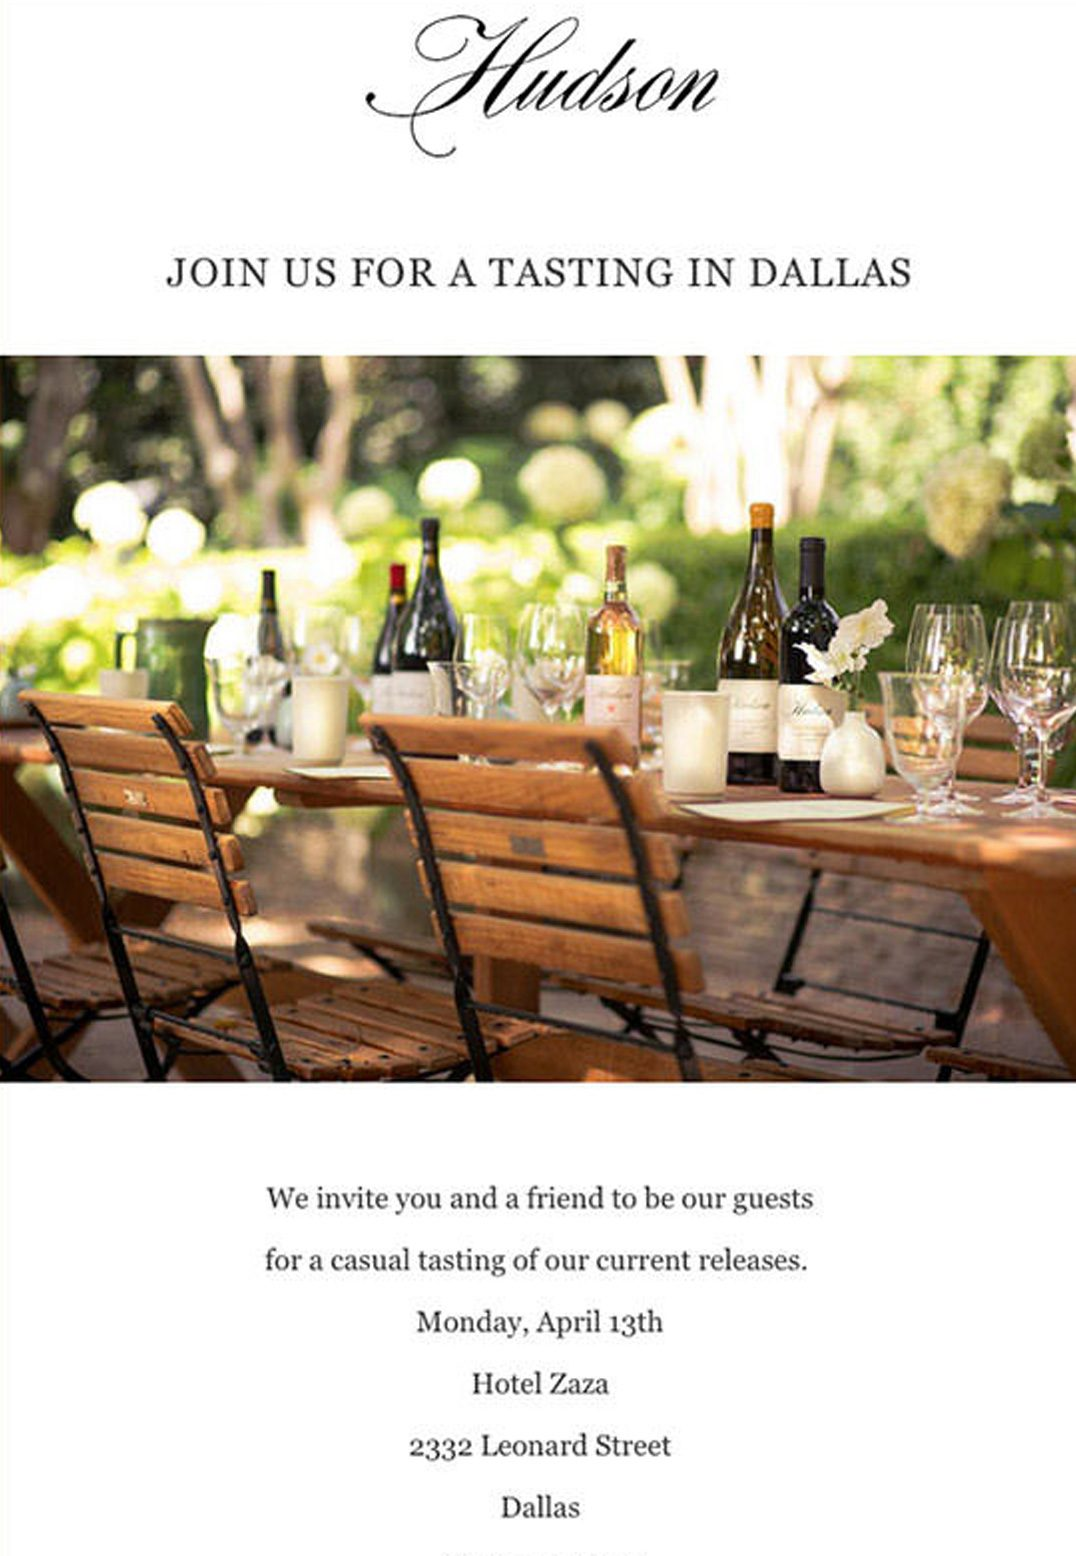 Hudson Ranch and Vineyards - Email Marketing Campaign - Invitation Email